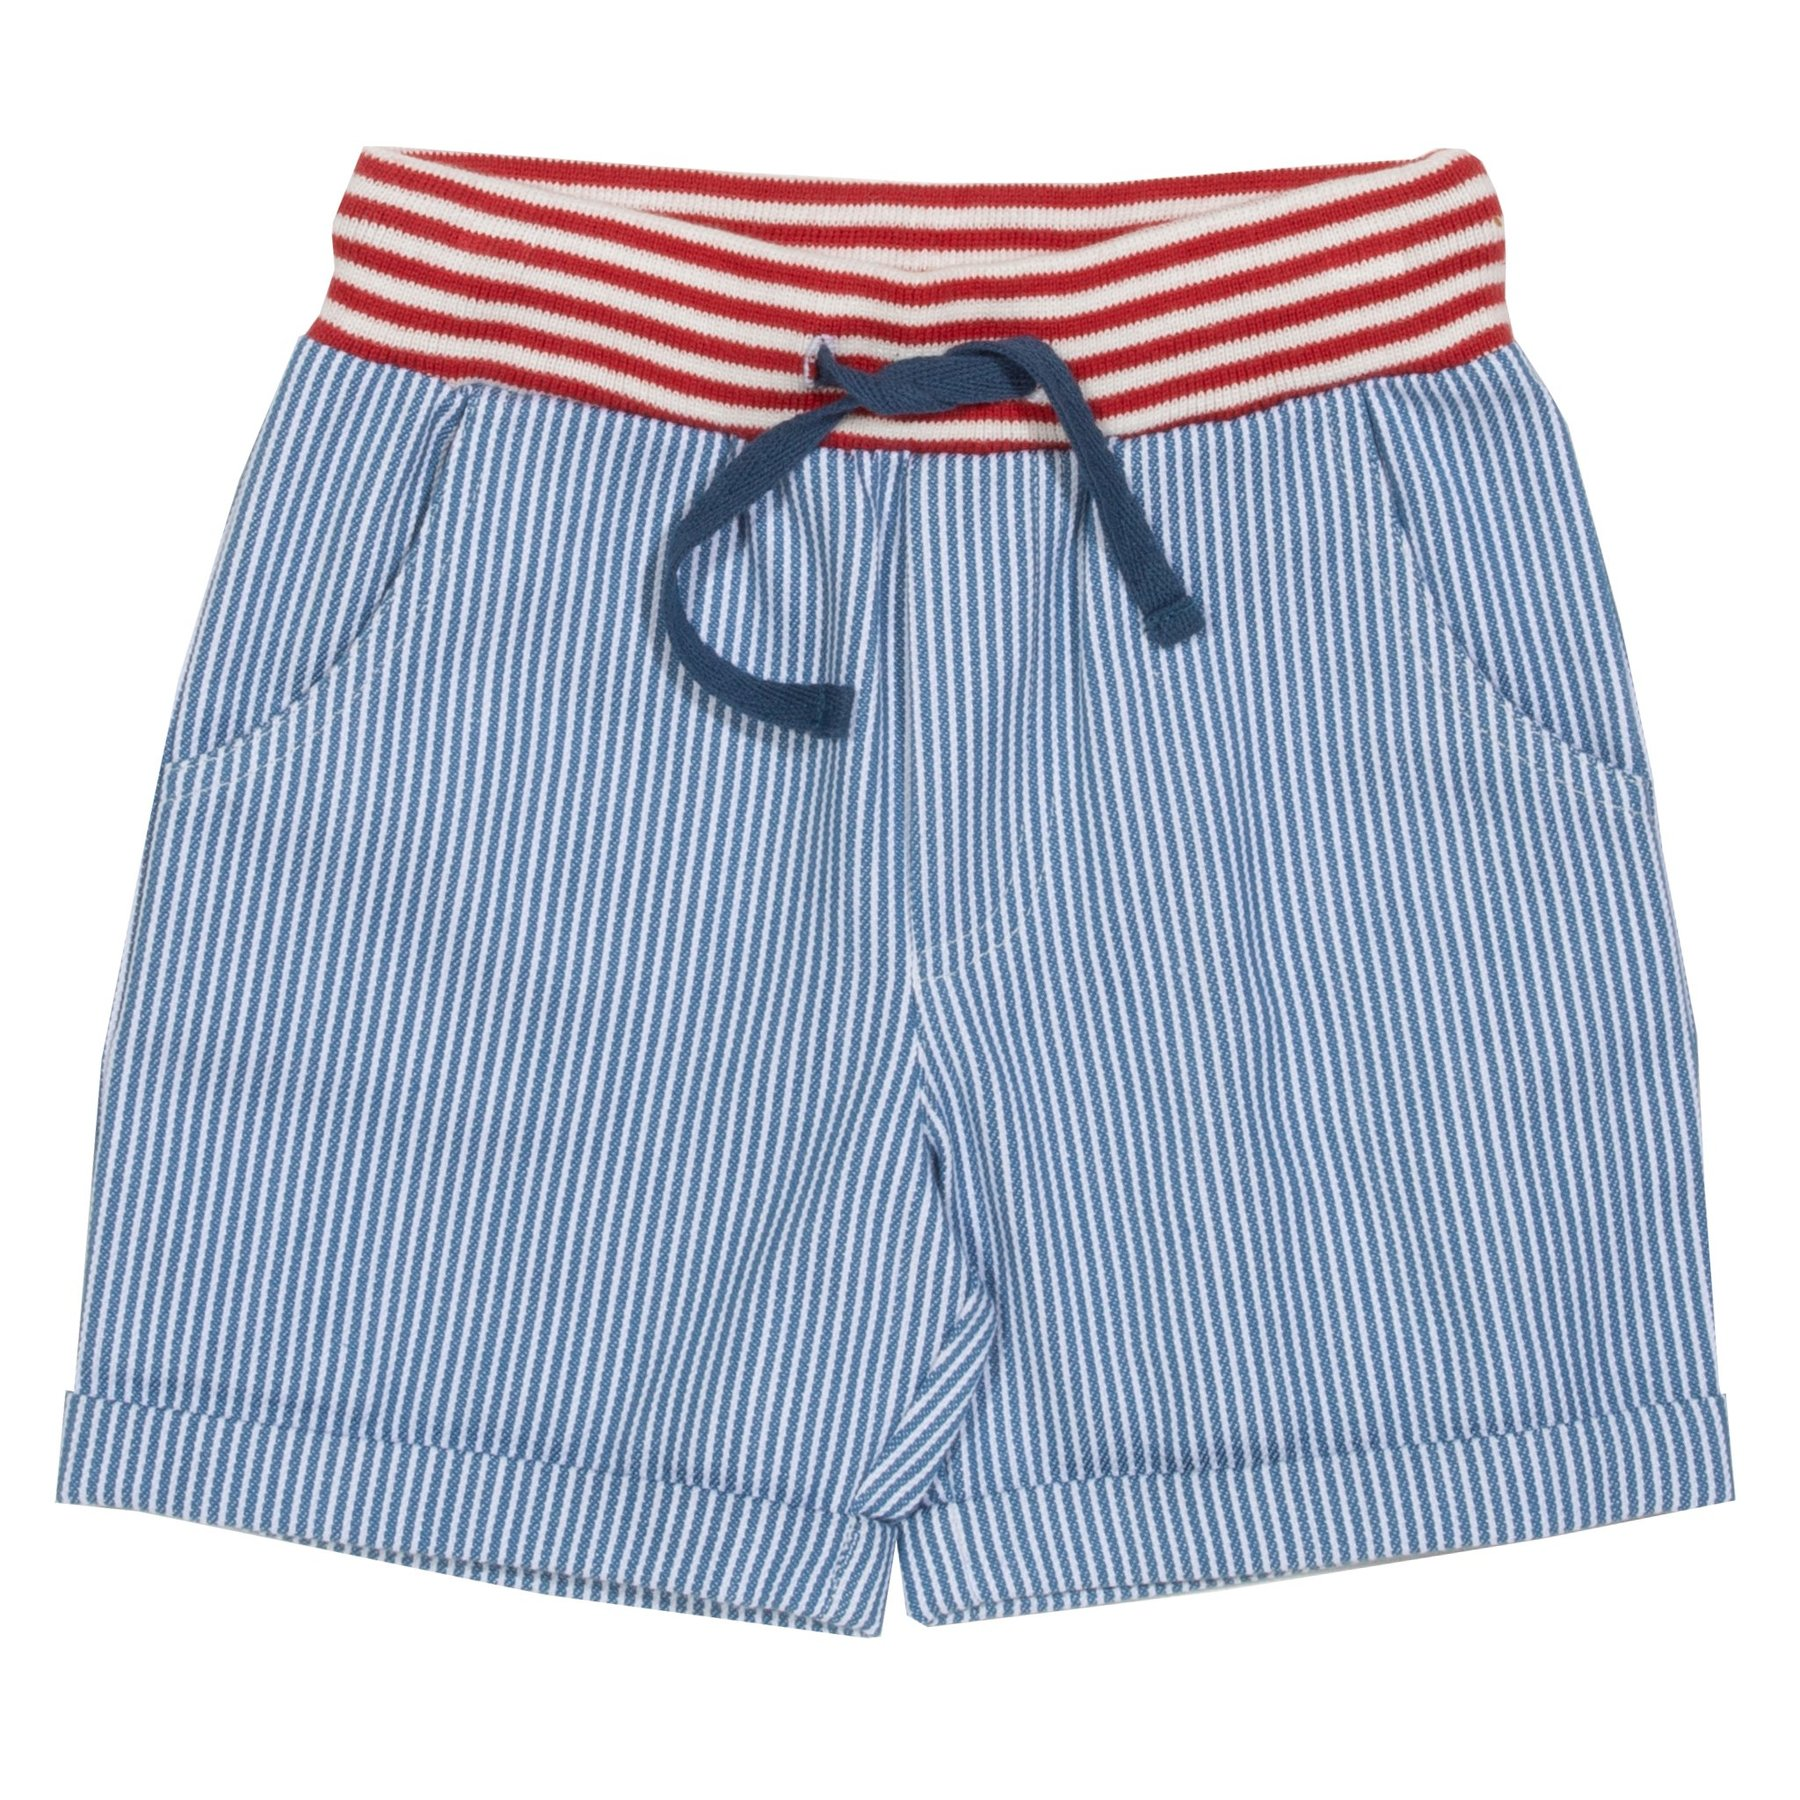 NOW £15 Kite Mini Ticking Shorts (was £22)